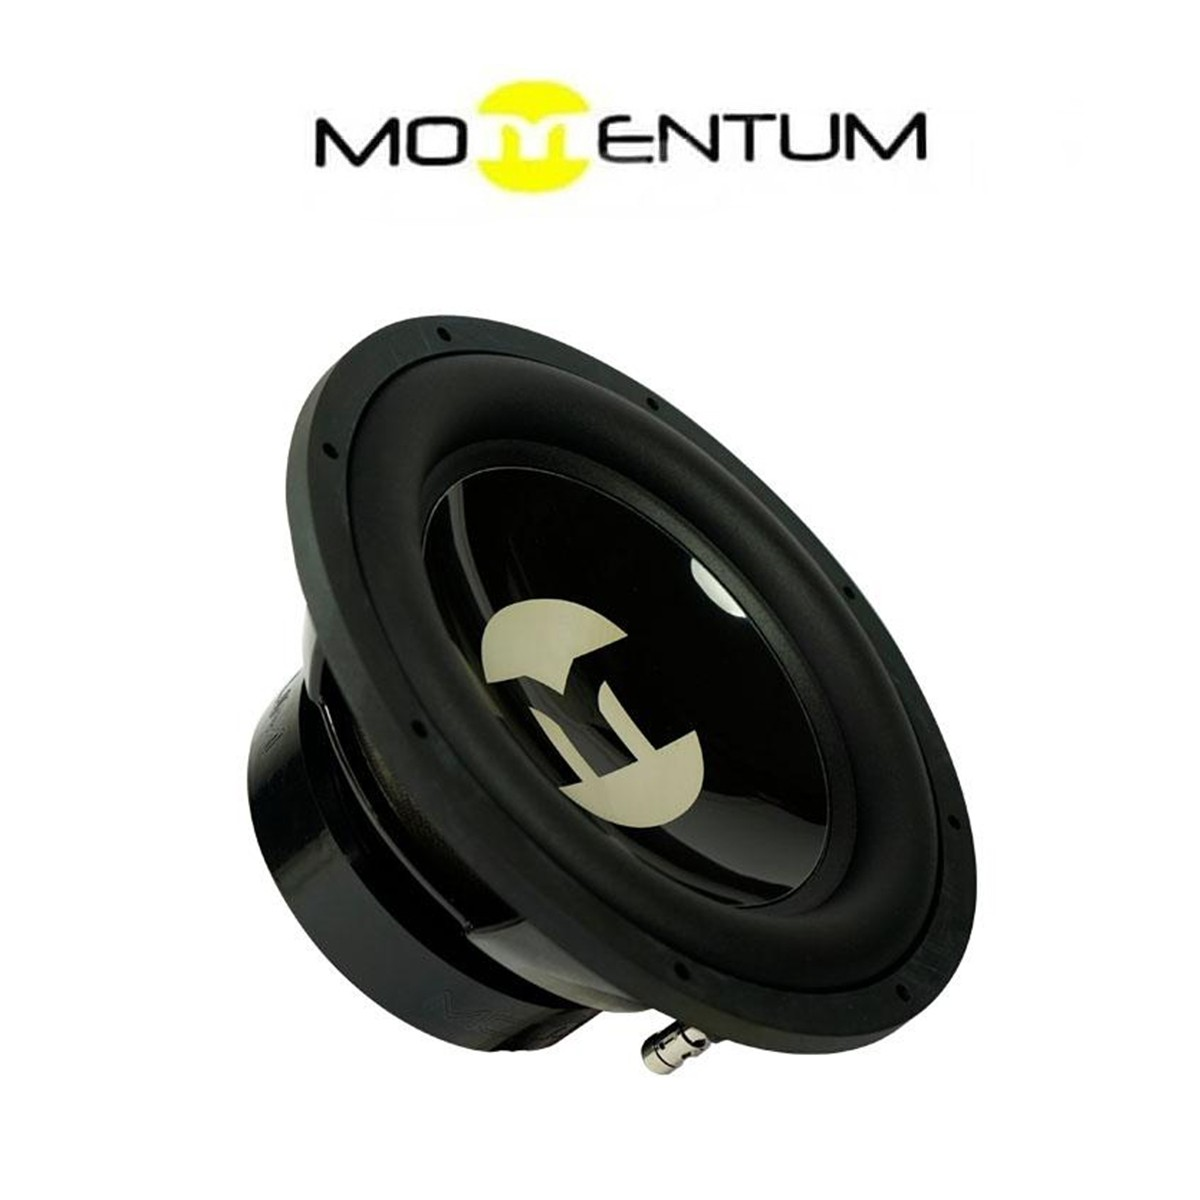 MOMENTUM GT-10D - SUBWOOFER PASIF 10 INCHI